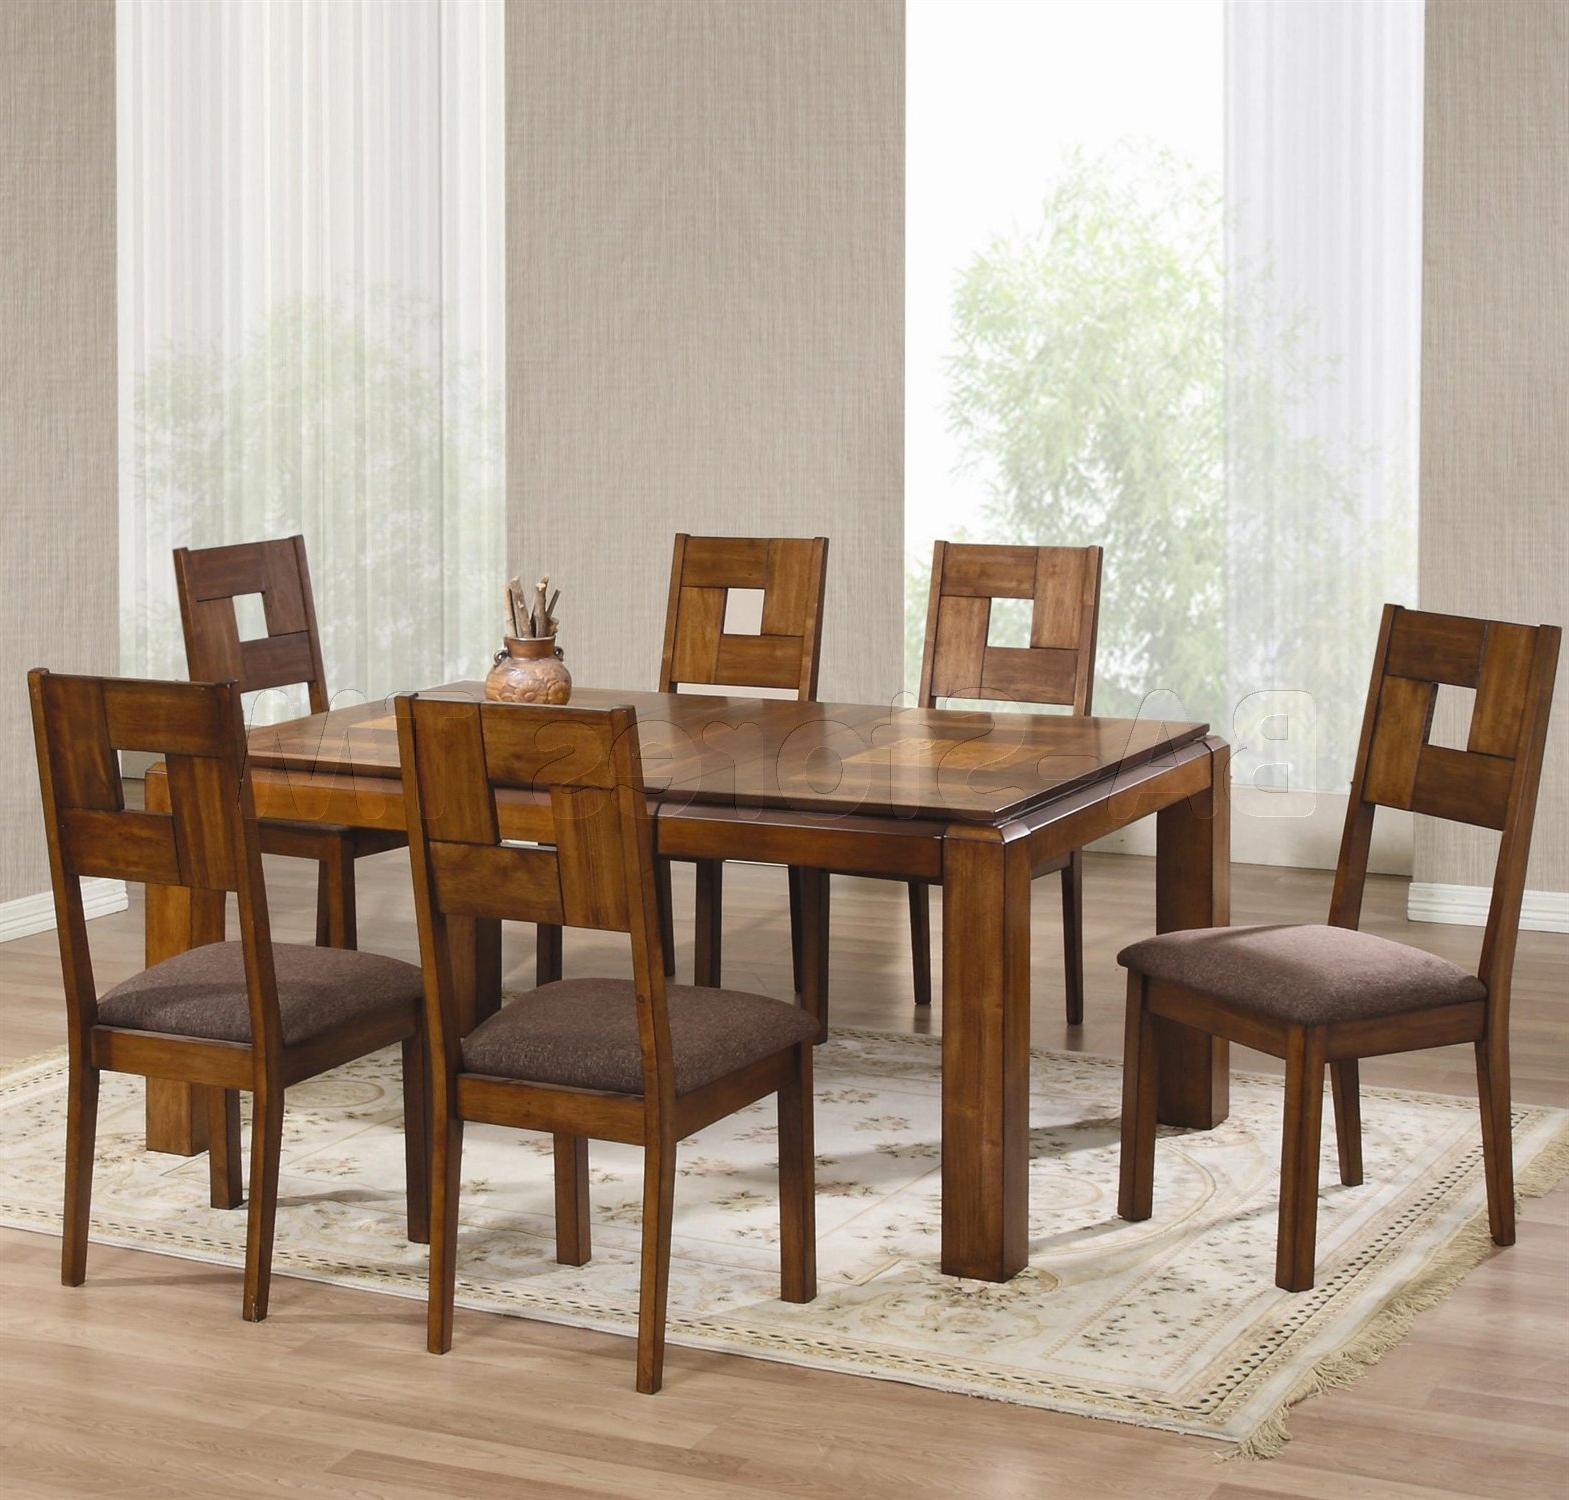 Widely Used 10 Chair Dining Room Set 10 Seat Dining Room Table And Chairs With Regard To Cheap Dining Tables And Chairs (View 6 of 25)